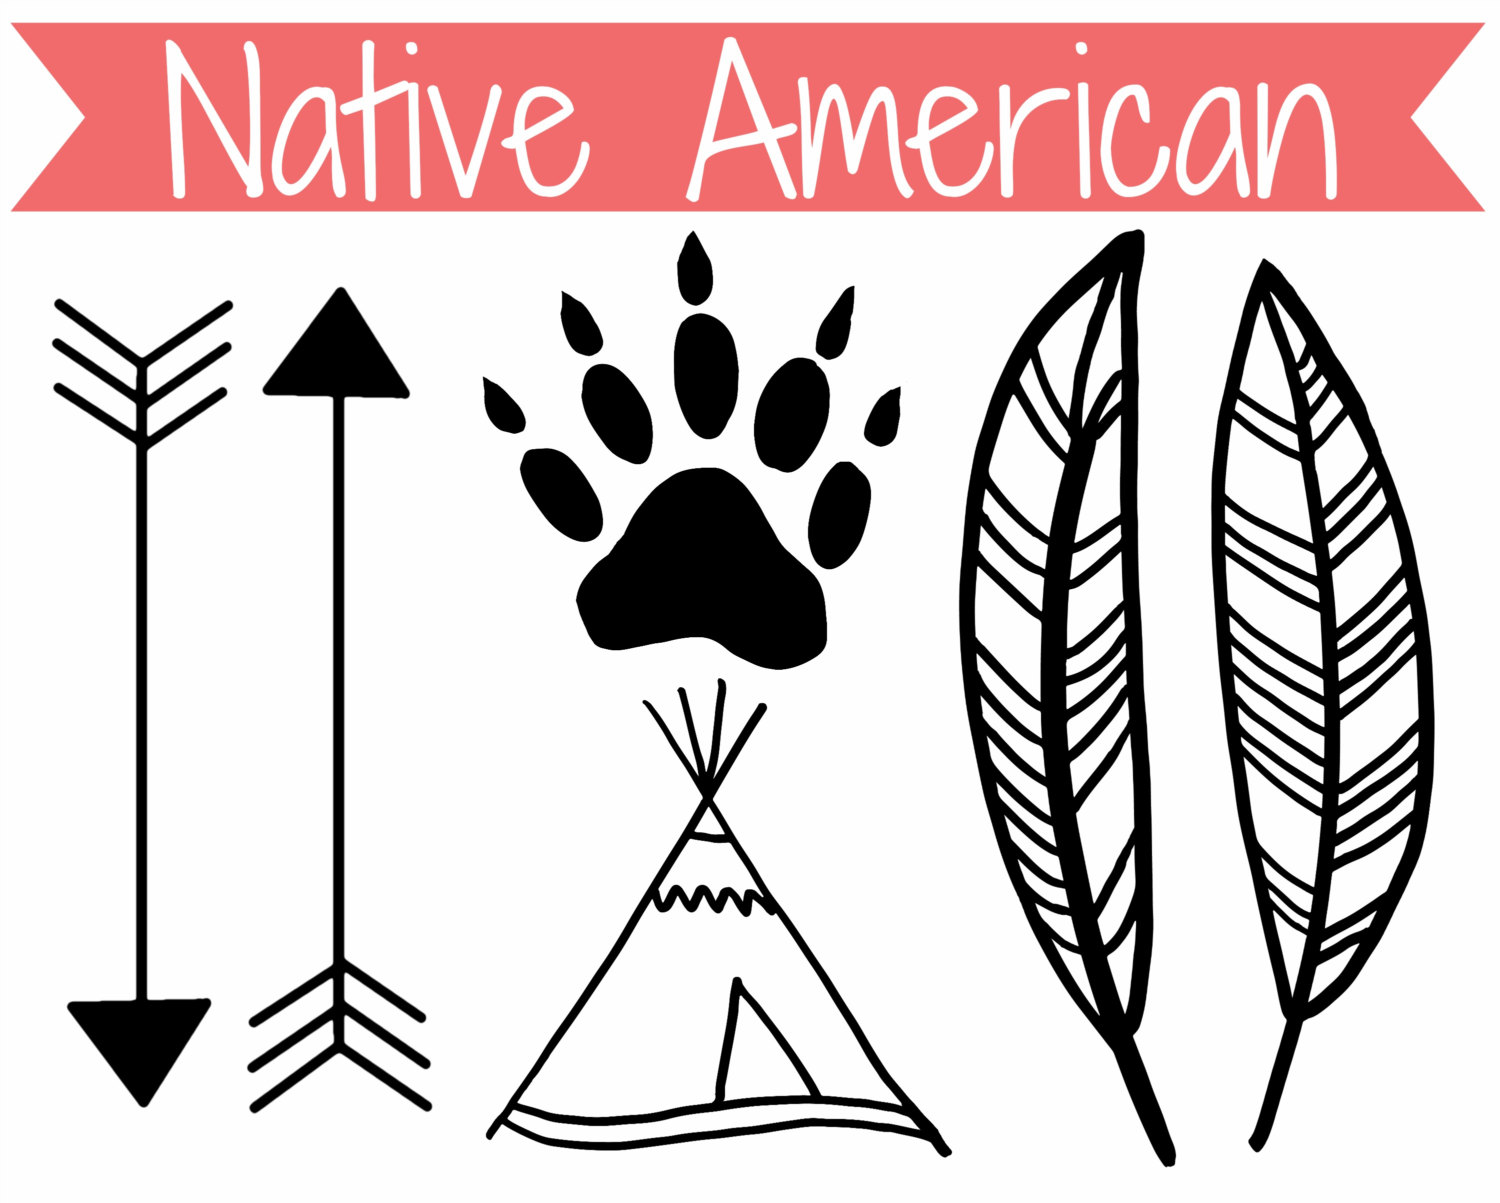 American Indian Graphics - Cliparts.co